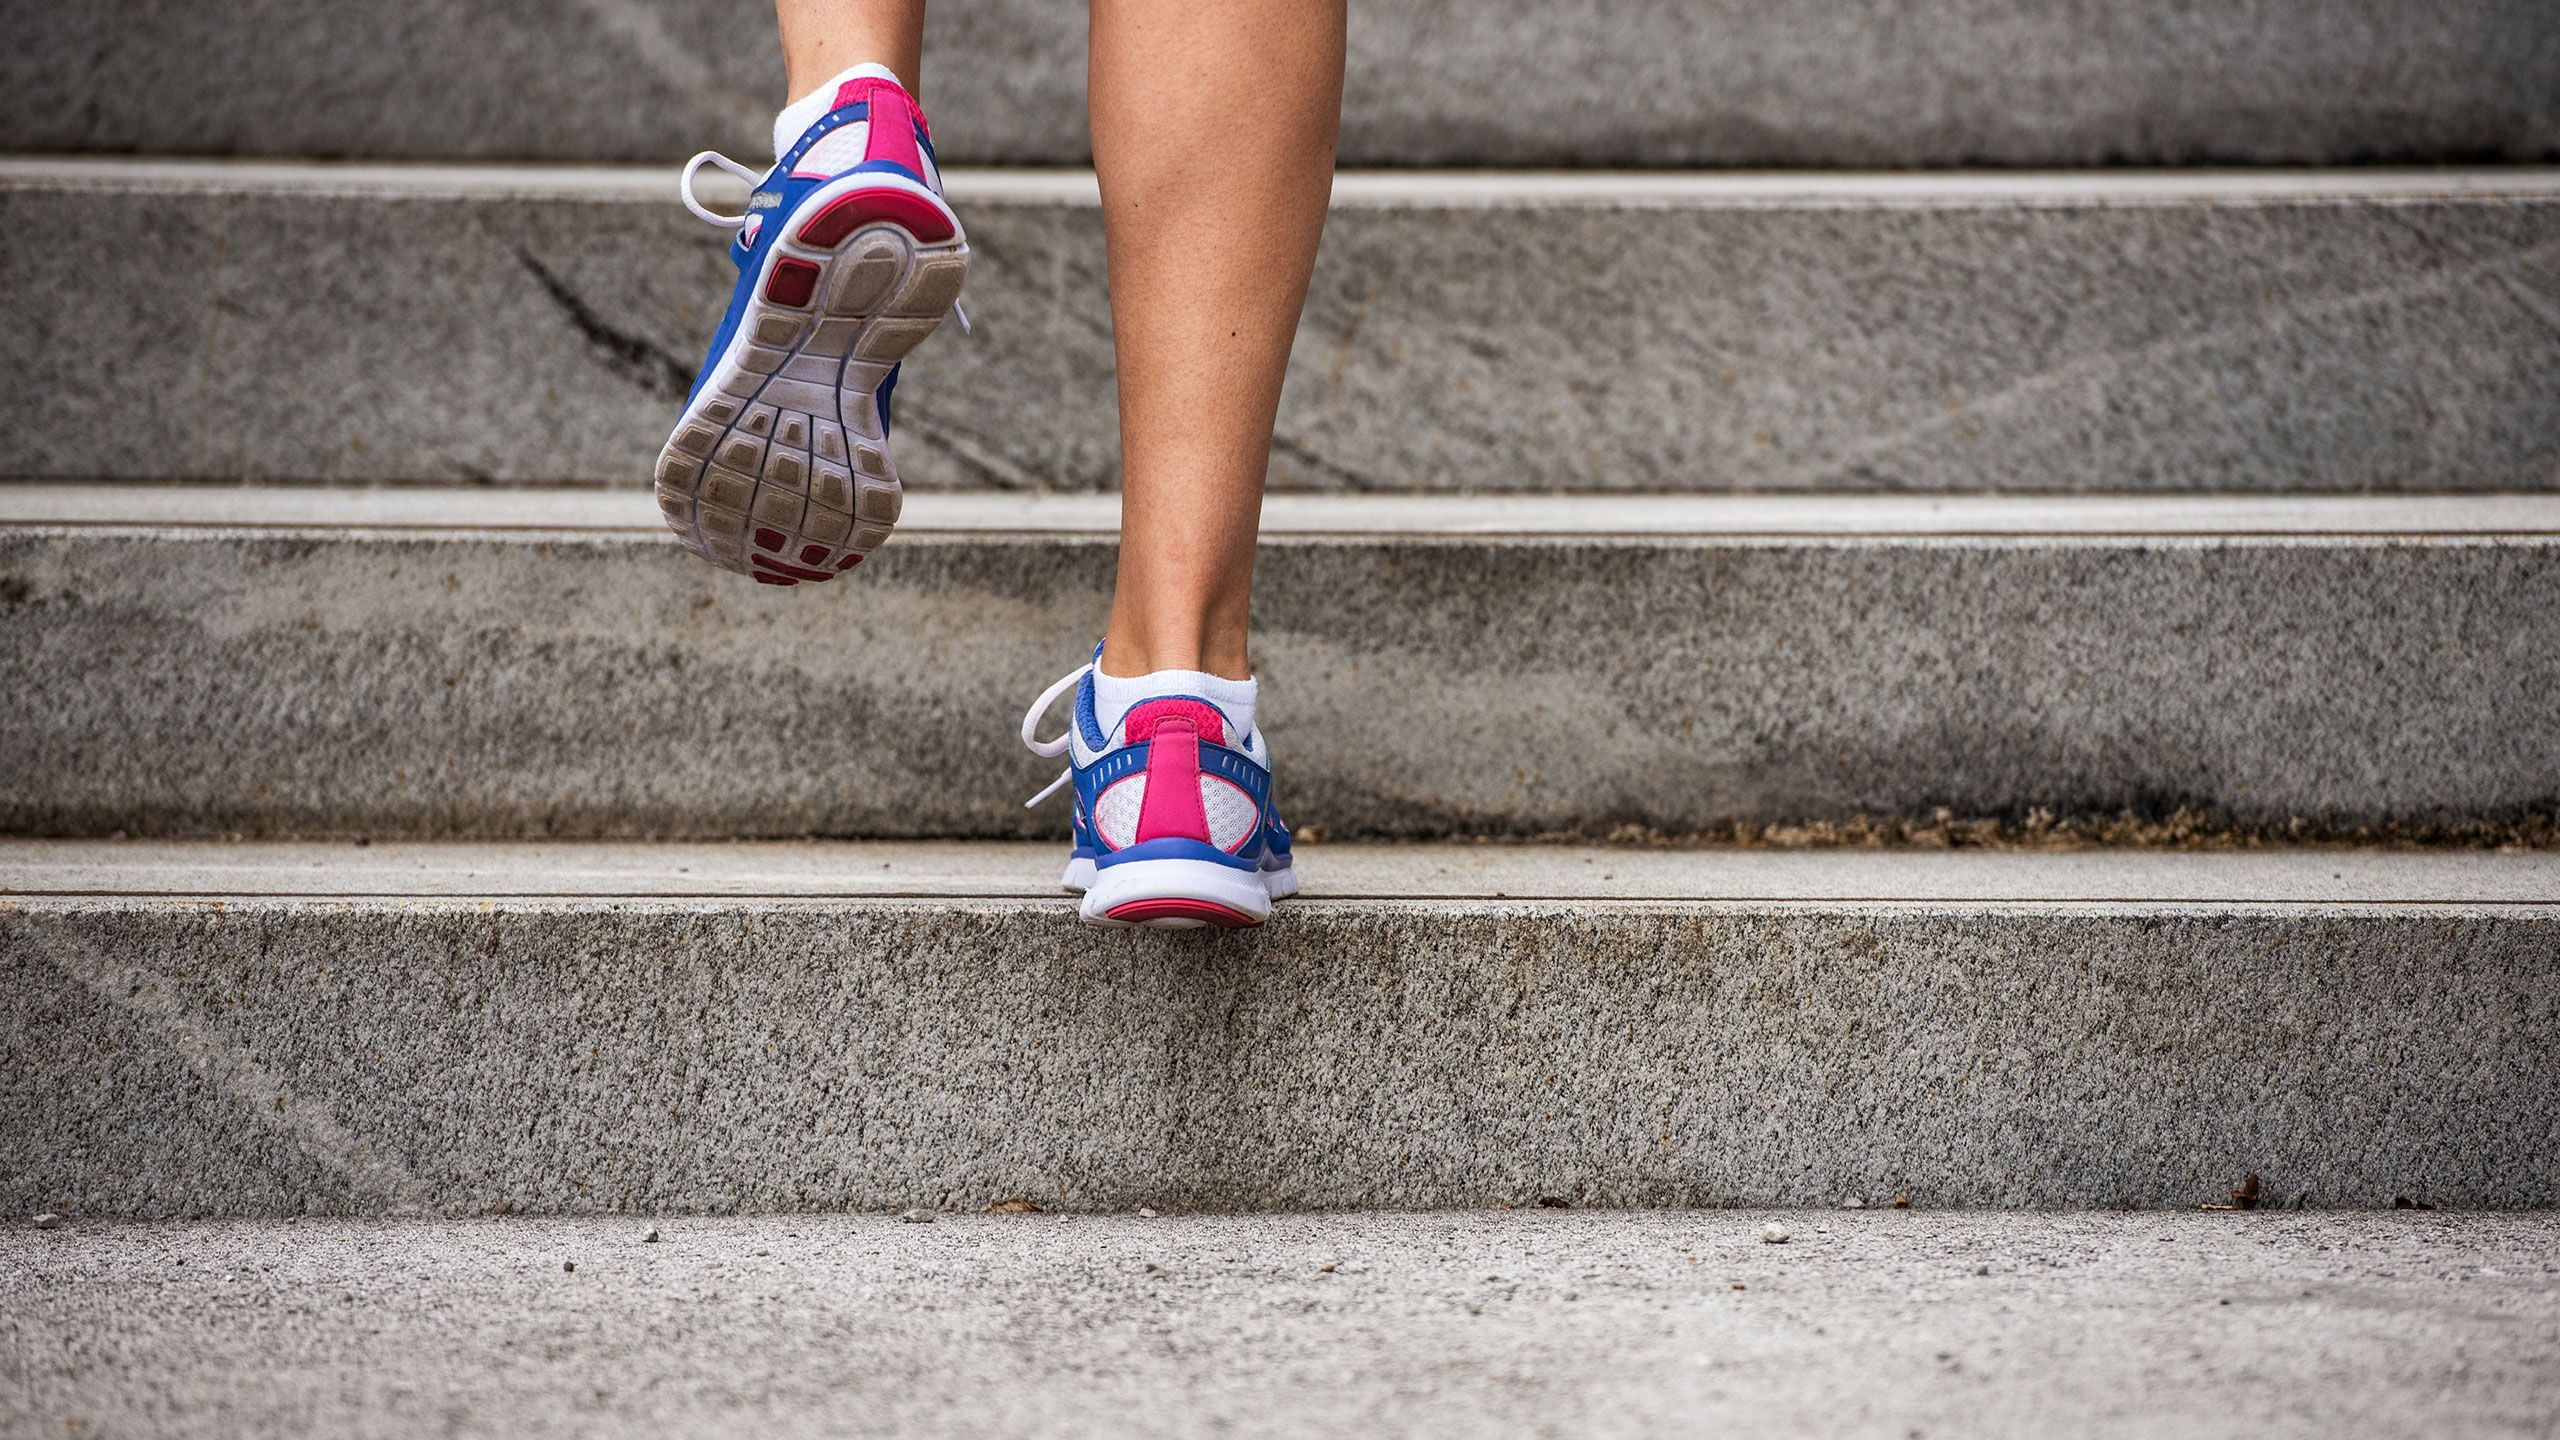 6 Easy Exercises for Knee Pain Relief